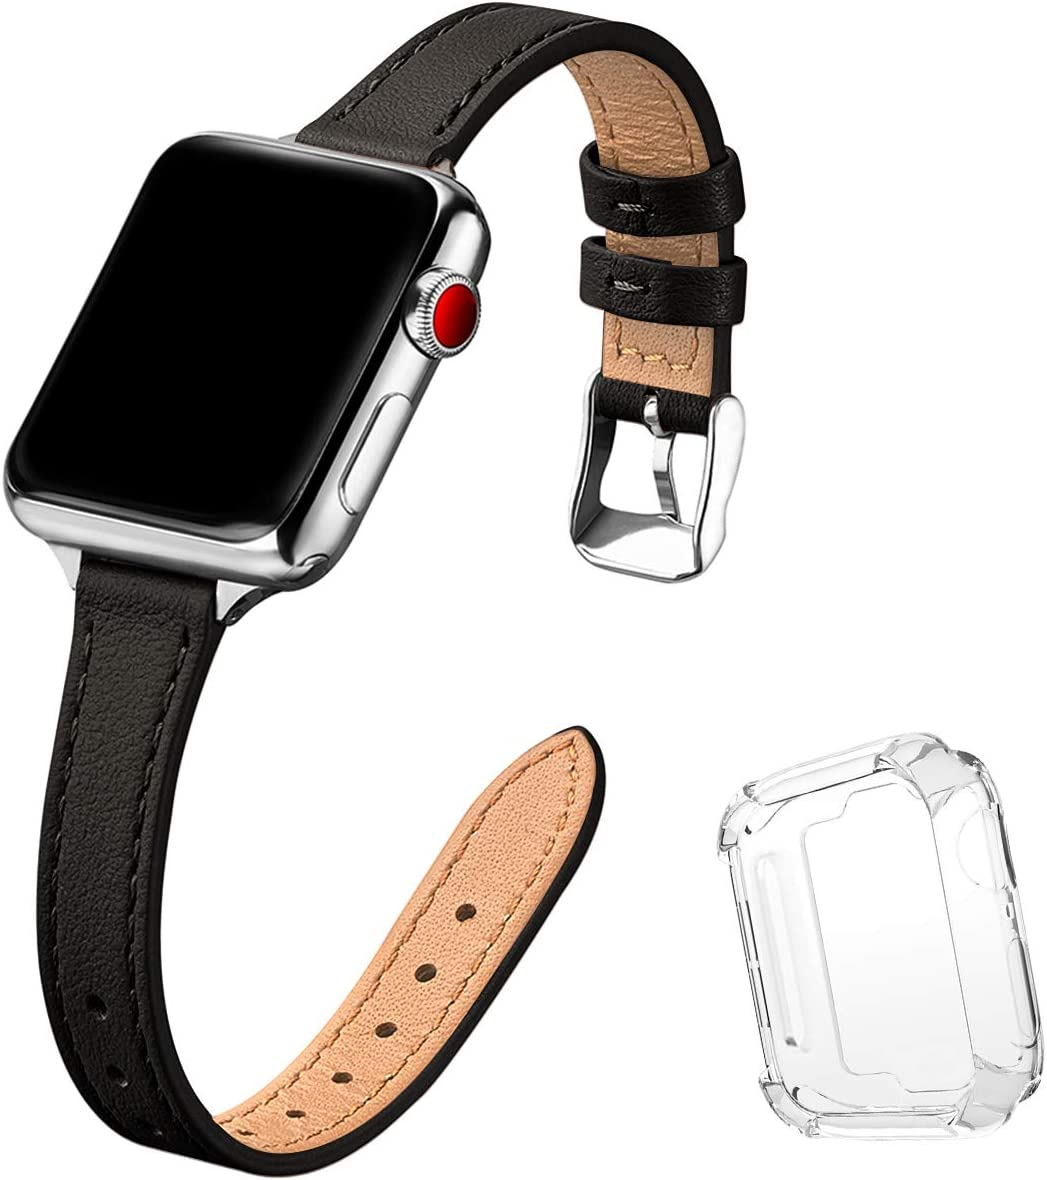 STIROLL Slim Leather Bands Compatible with Apple Watch Band 38mm 40mm 42mm 44mm, Top Grain Leather Watch Thin Wristband for iWatch SE Series 6/5/4/3/2/1 (Black with Silver, 42mm/44mm)